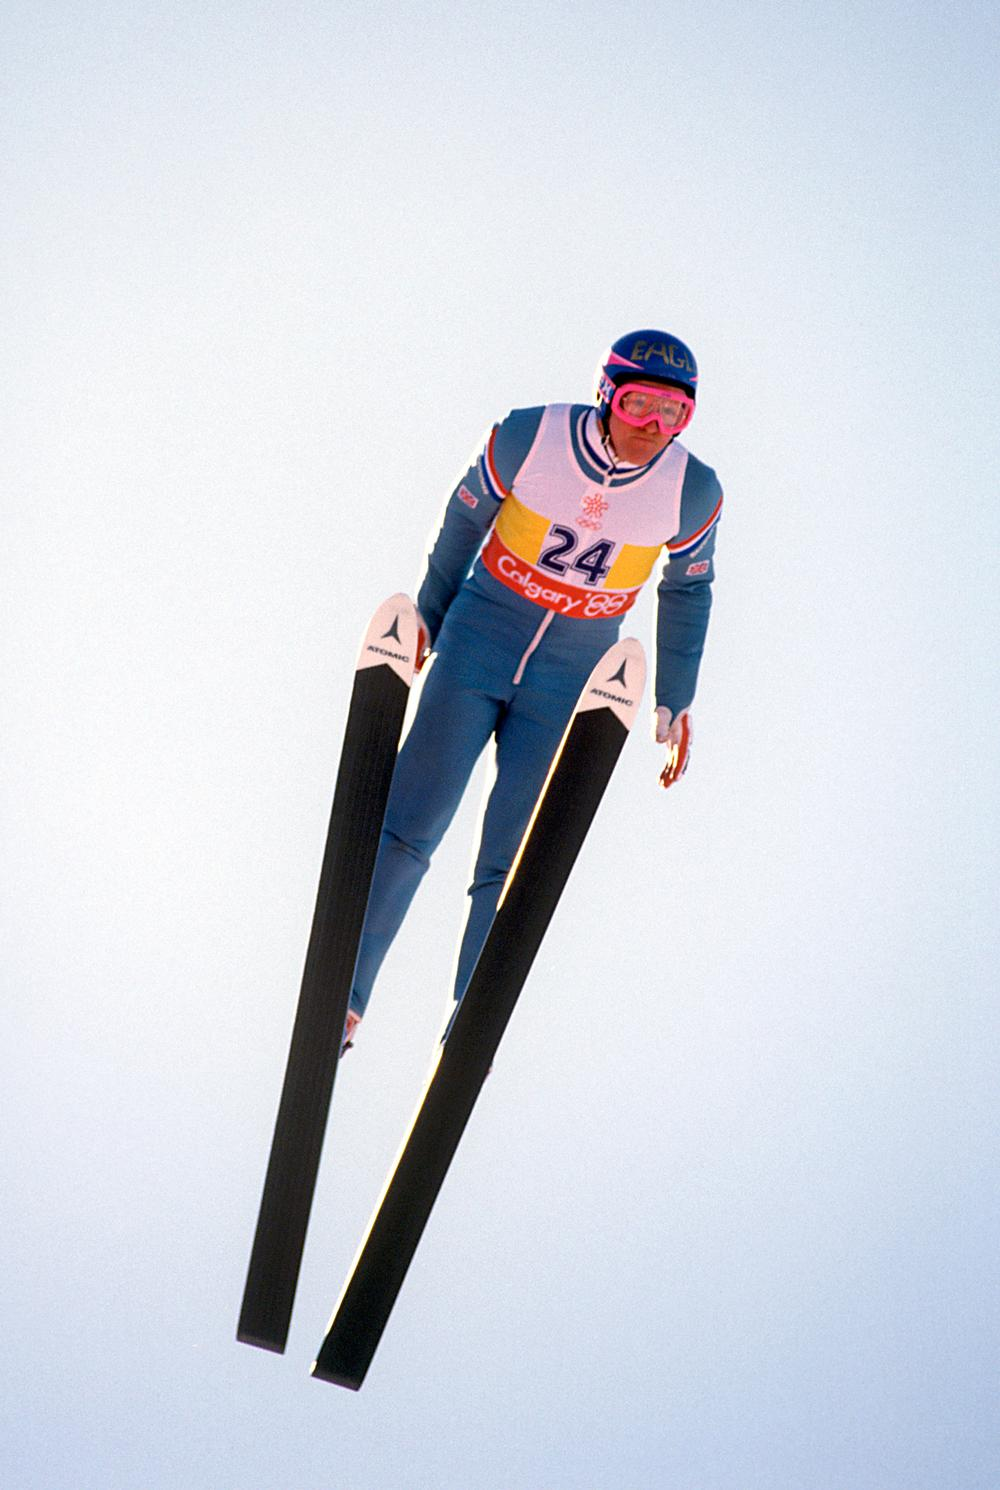 In 1988, Edwards became Britain's first Olympic ski jumper since 1929 / S&G/S&G and Barratts/EMPICS Sport